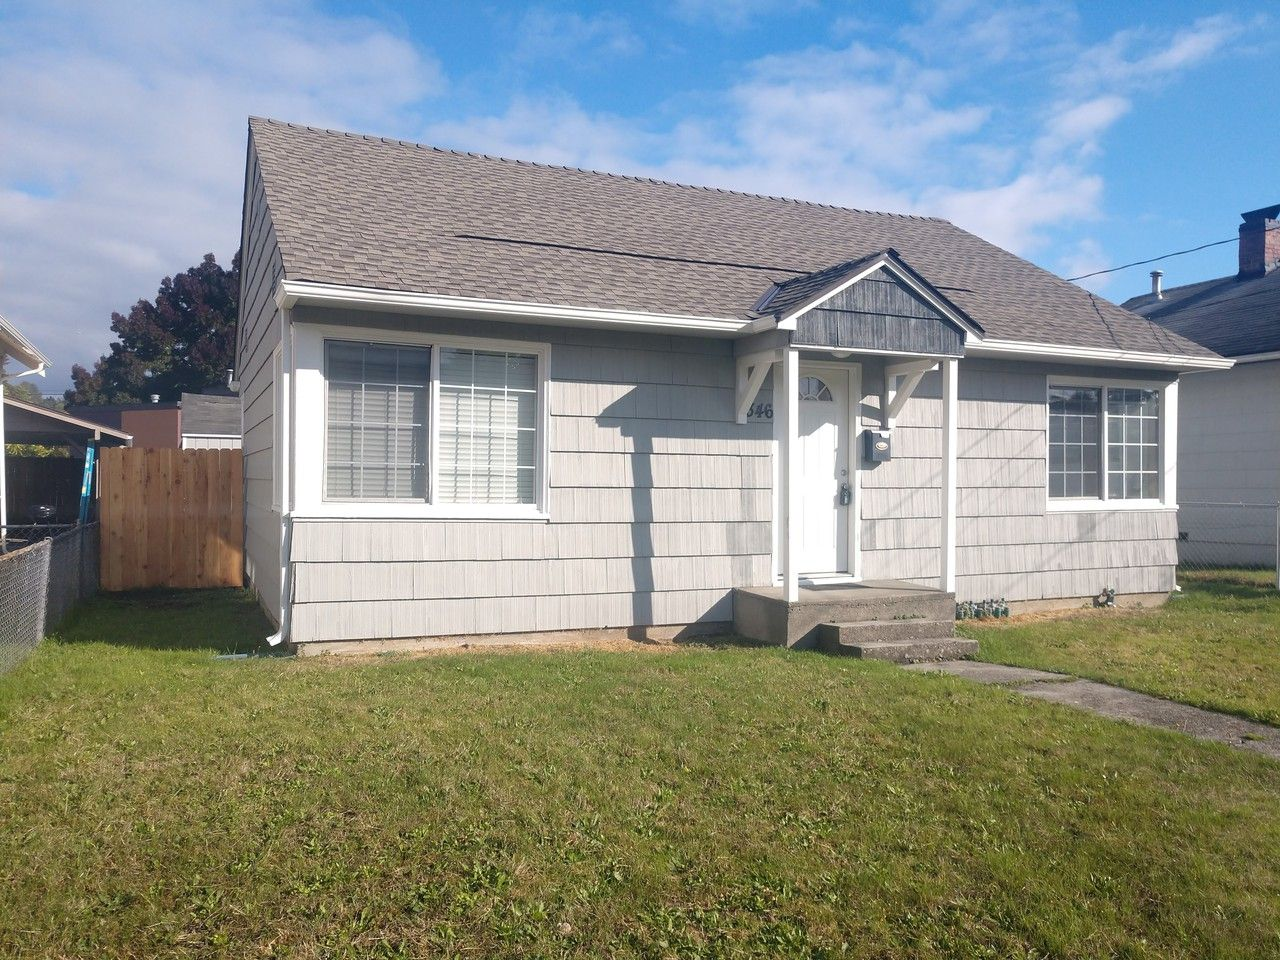 346 Pelly Ave N, Renton, WA 98057 2 Bedroom House for Rent ...